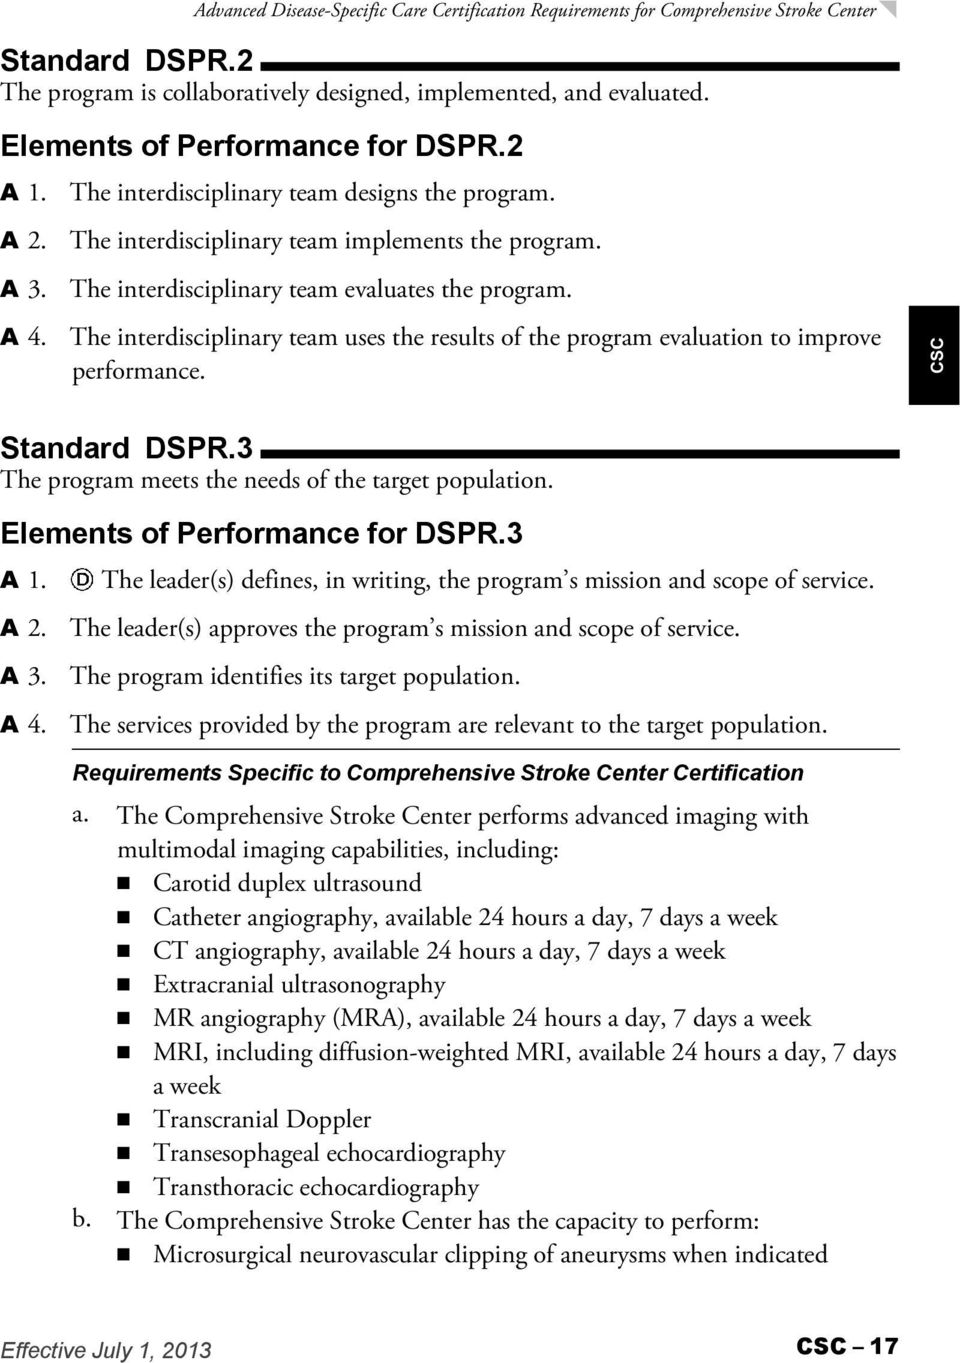 The interdisciplinary team uses the results of the program evaluation to improve performance. Standard DSPR.3 The program meets the needs of the target population. Elements of Performance for DSPR.